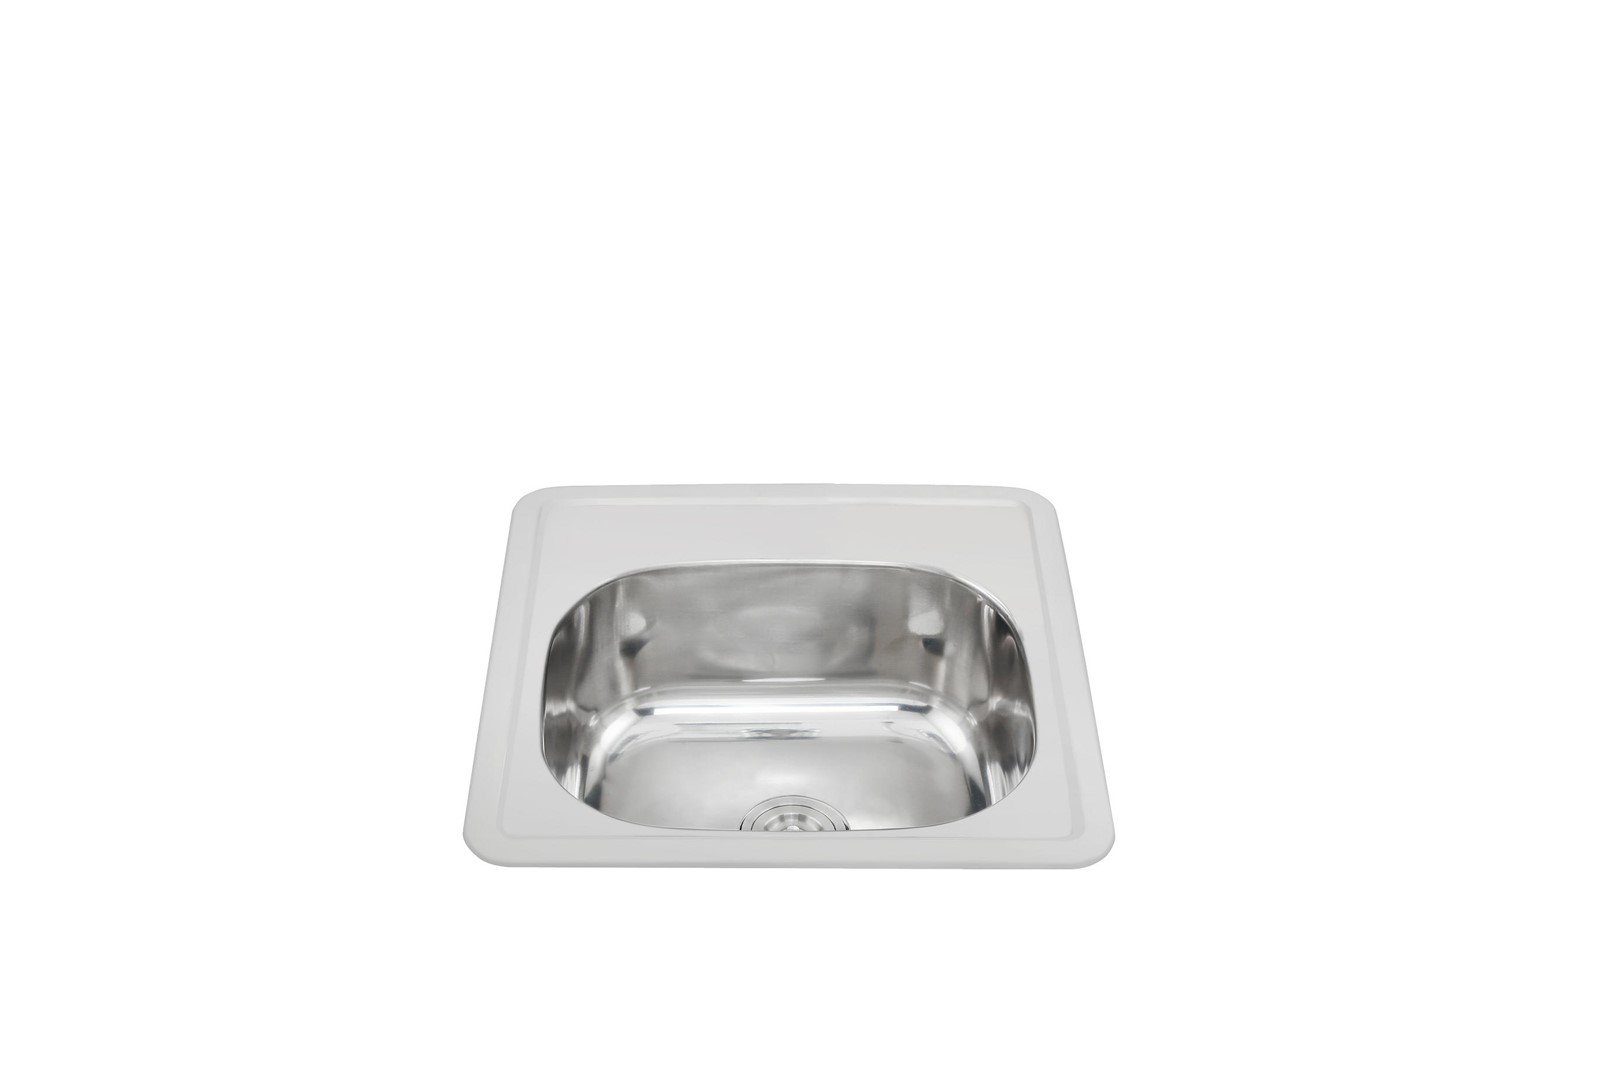 chinese manufacturer sqare bowl kitchen sink for sale wy